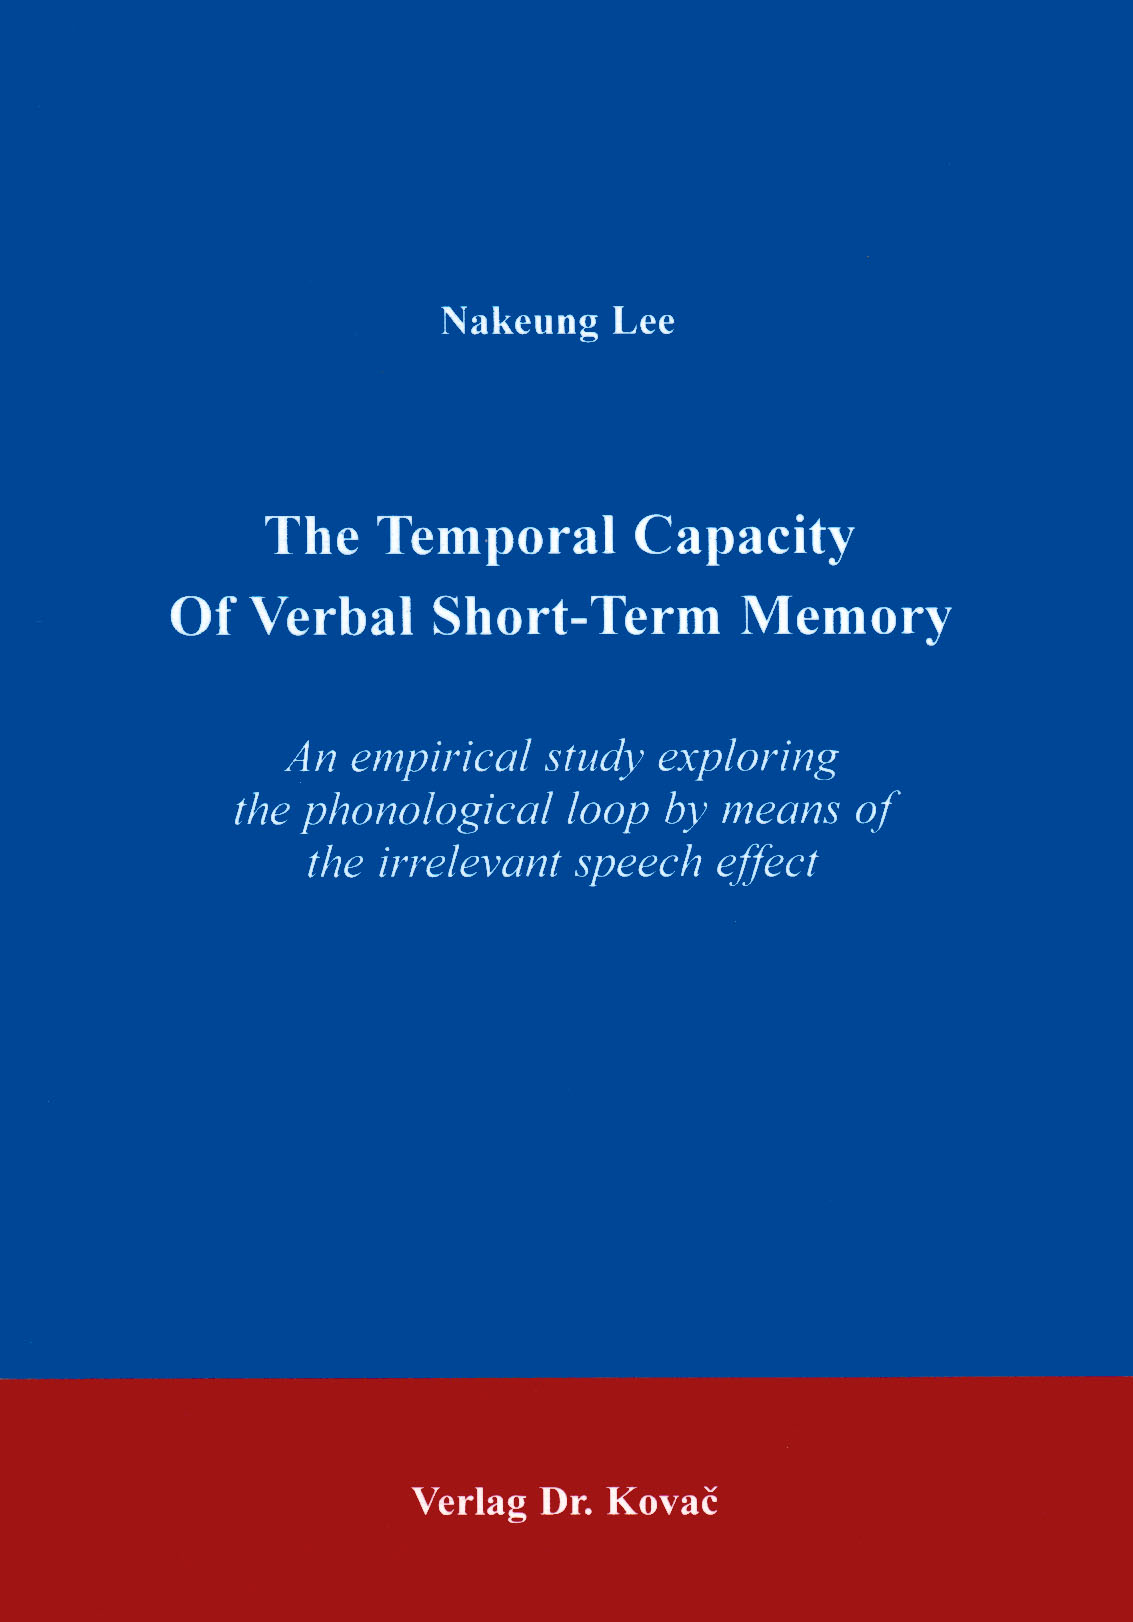 Cover: The temporal capacity of verbal short-term memory